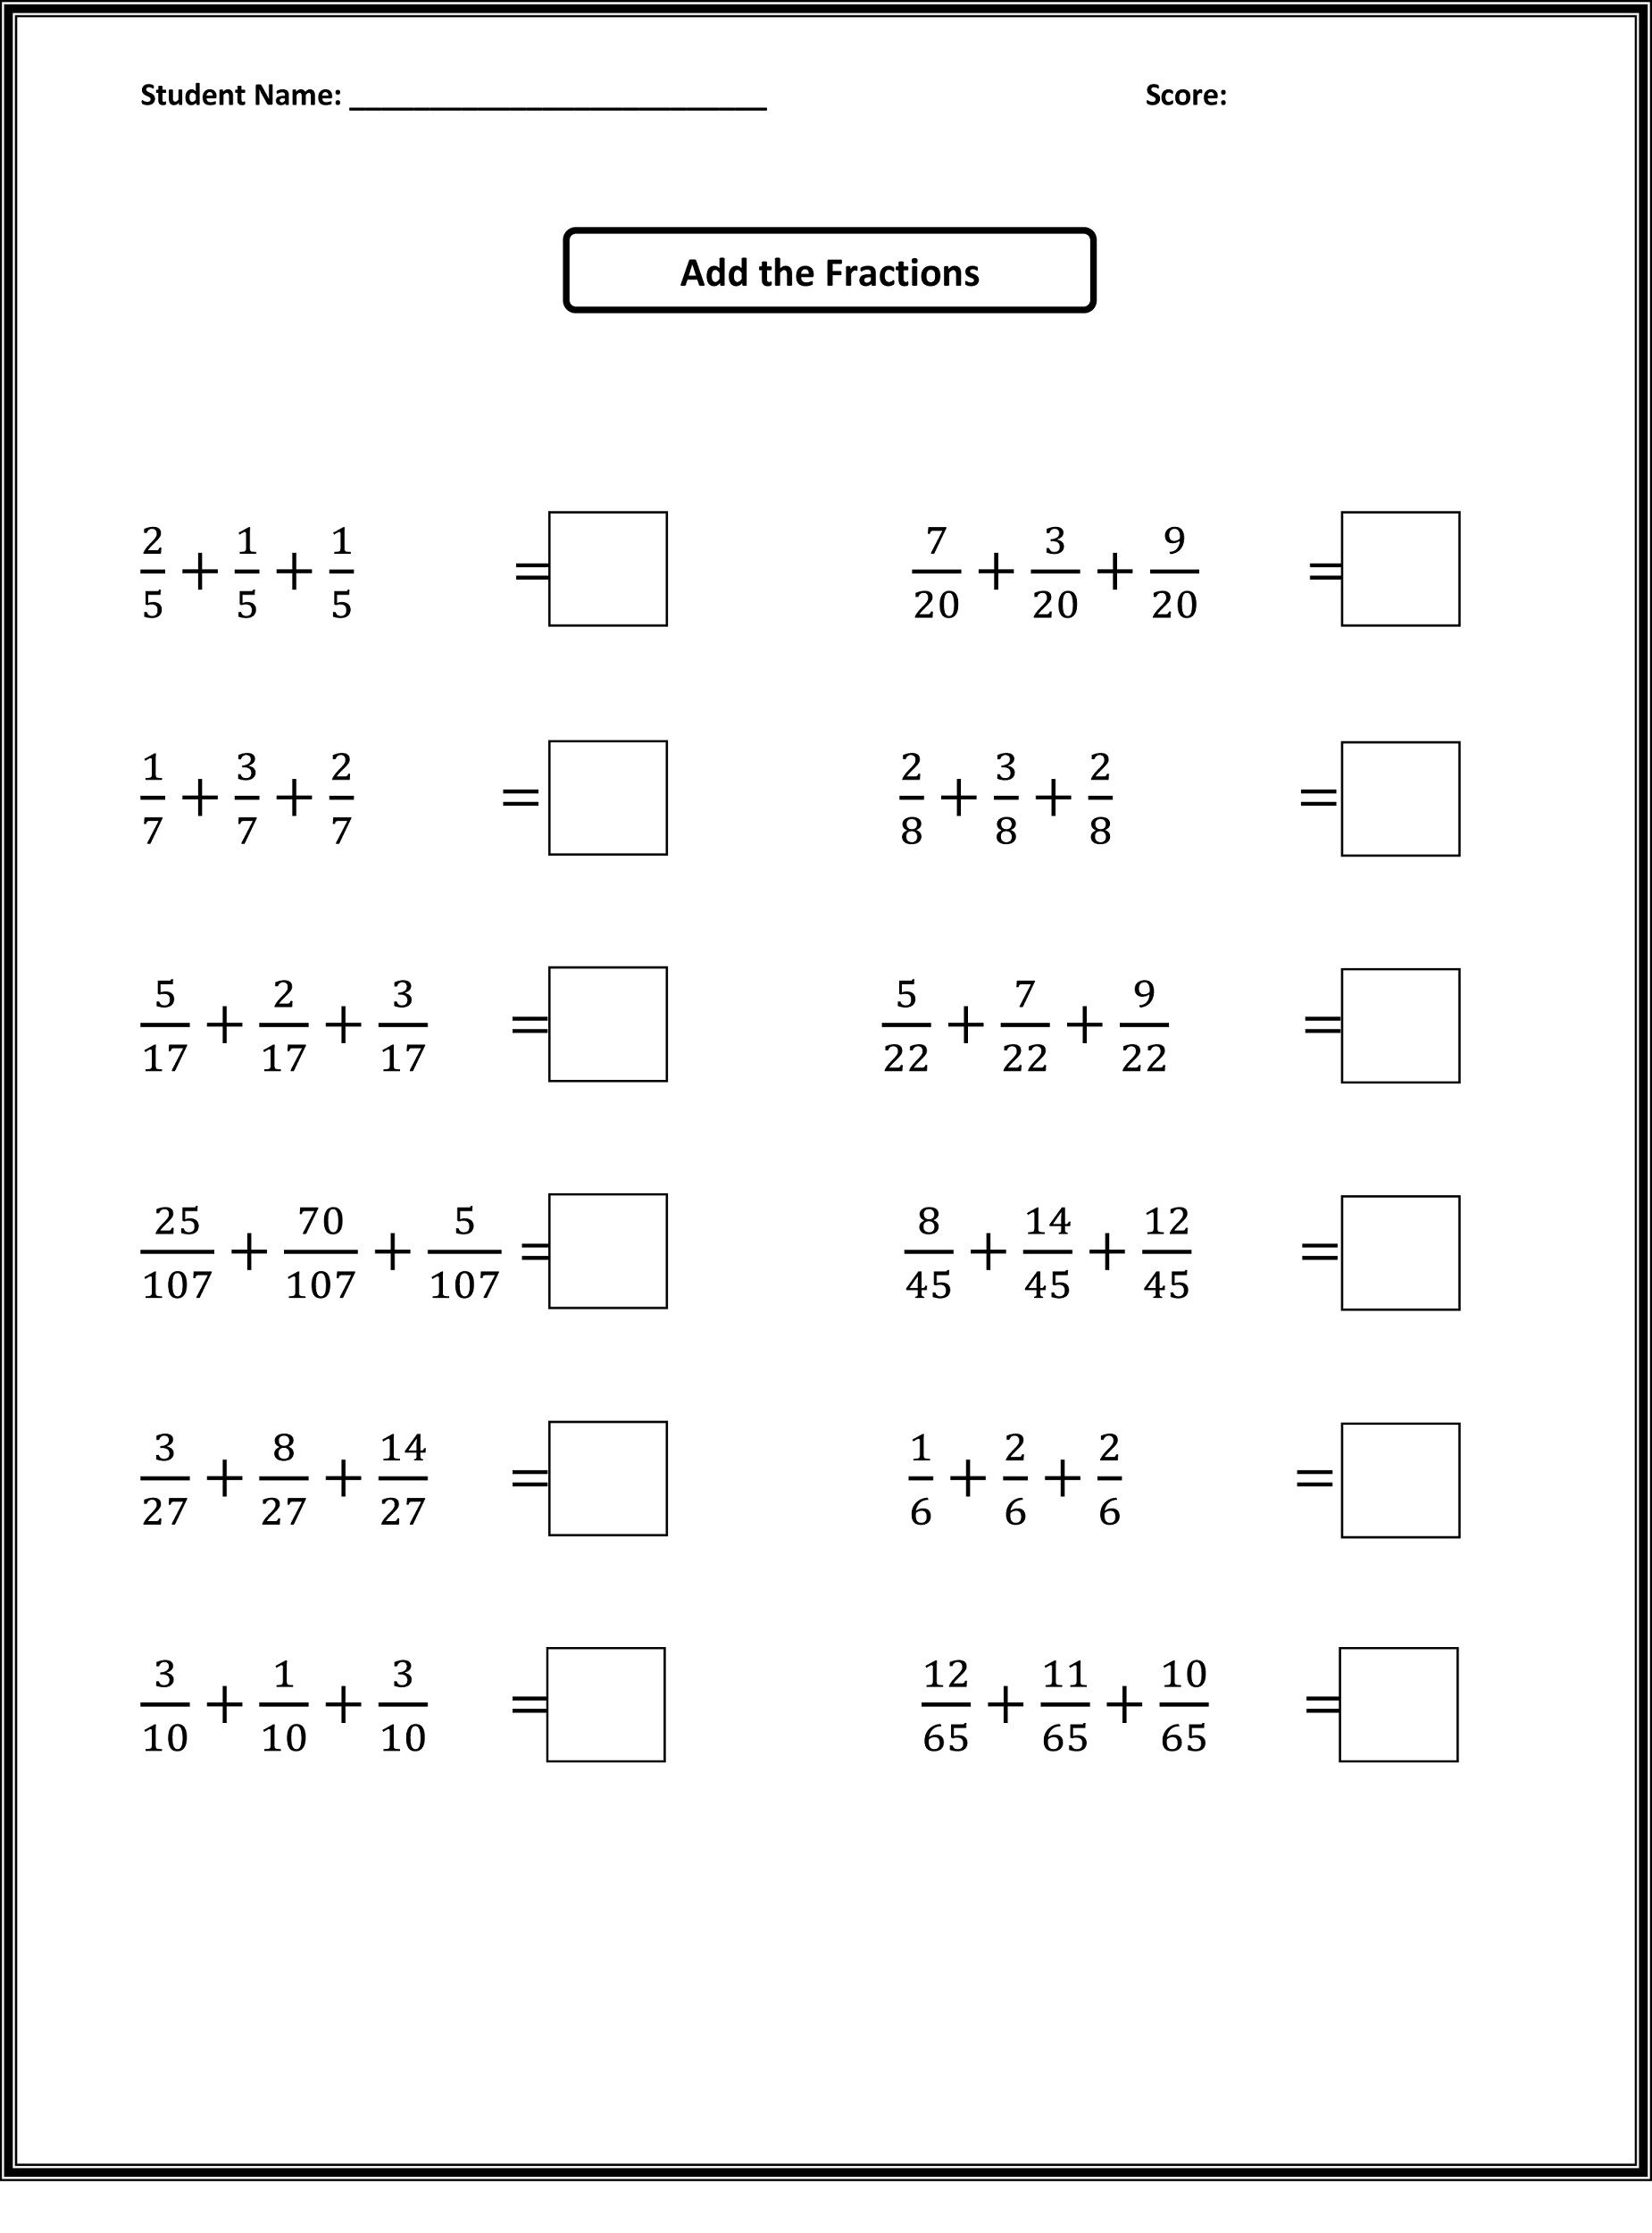 Free Math Worksheets For Grade 4 Activity Shelter 4th Grade Math Worksheets Fractions Worksheets Math Fractions Worksheets